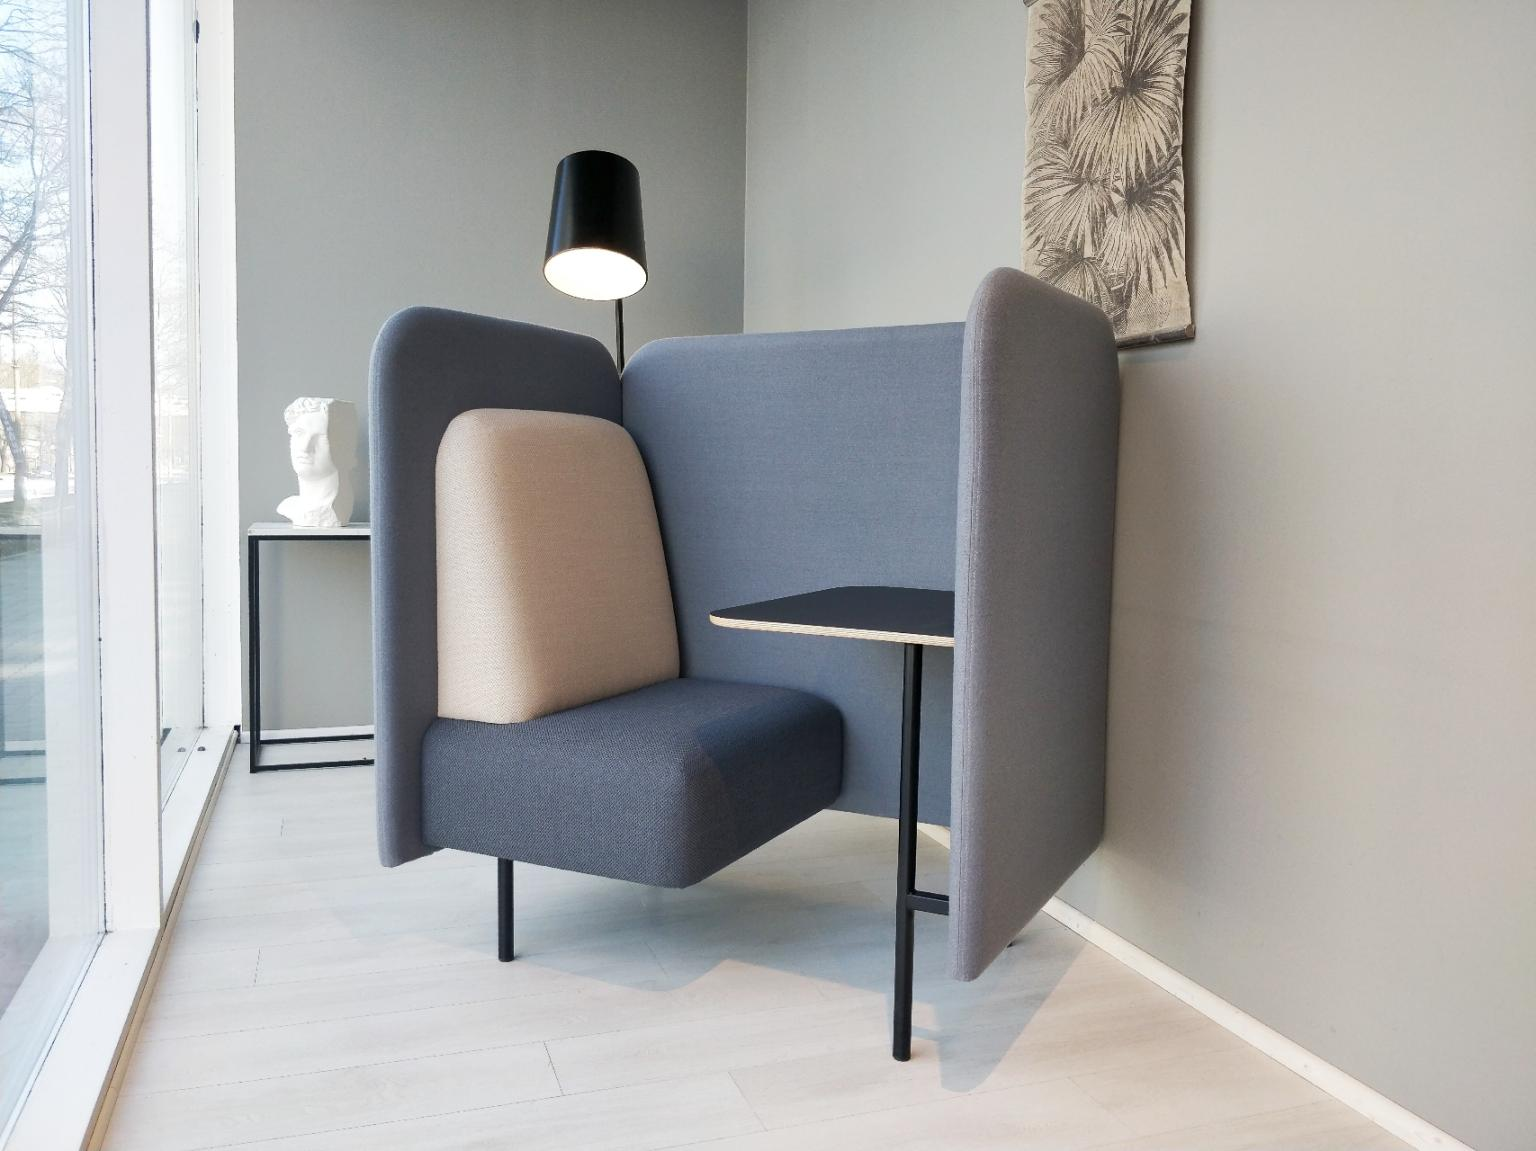 Biennale Interieur - Belgium's leading design and interior event - Nook-in-softrend-office2.jpg